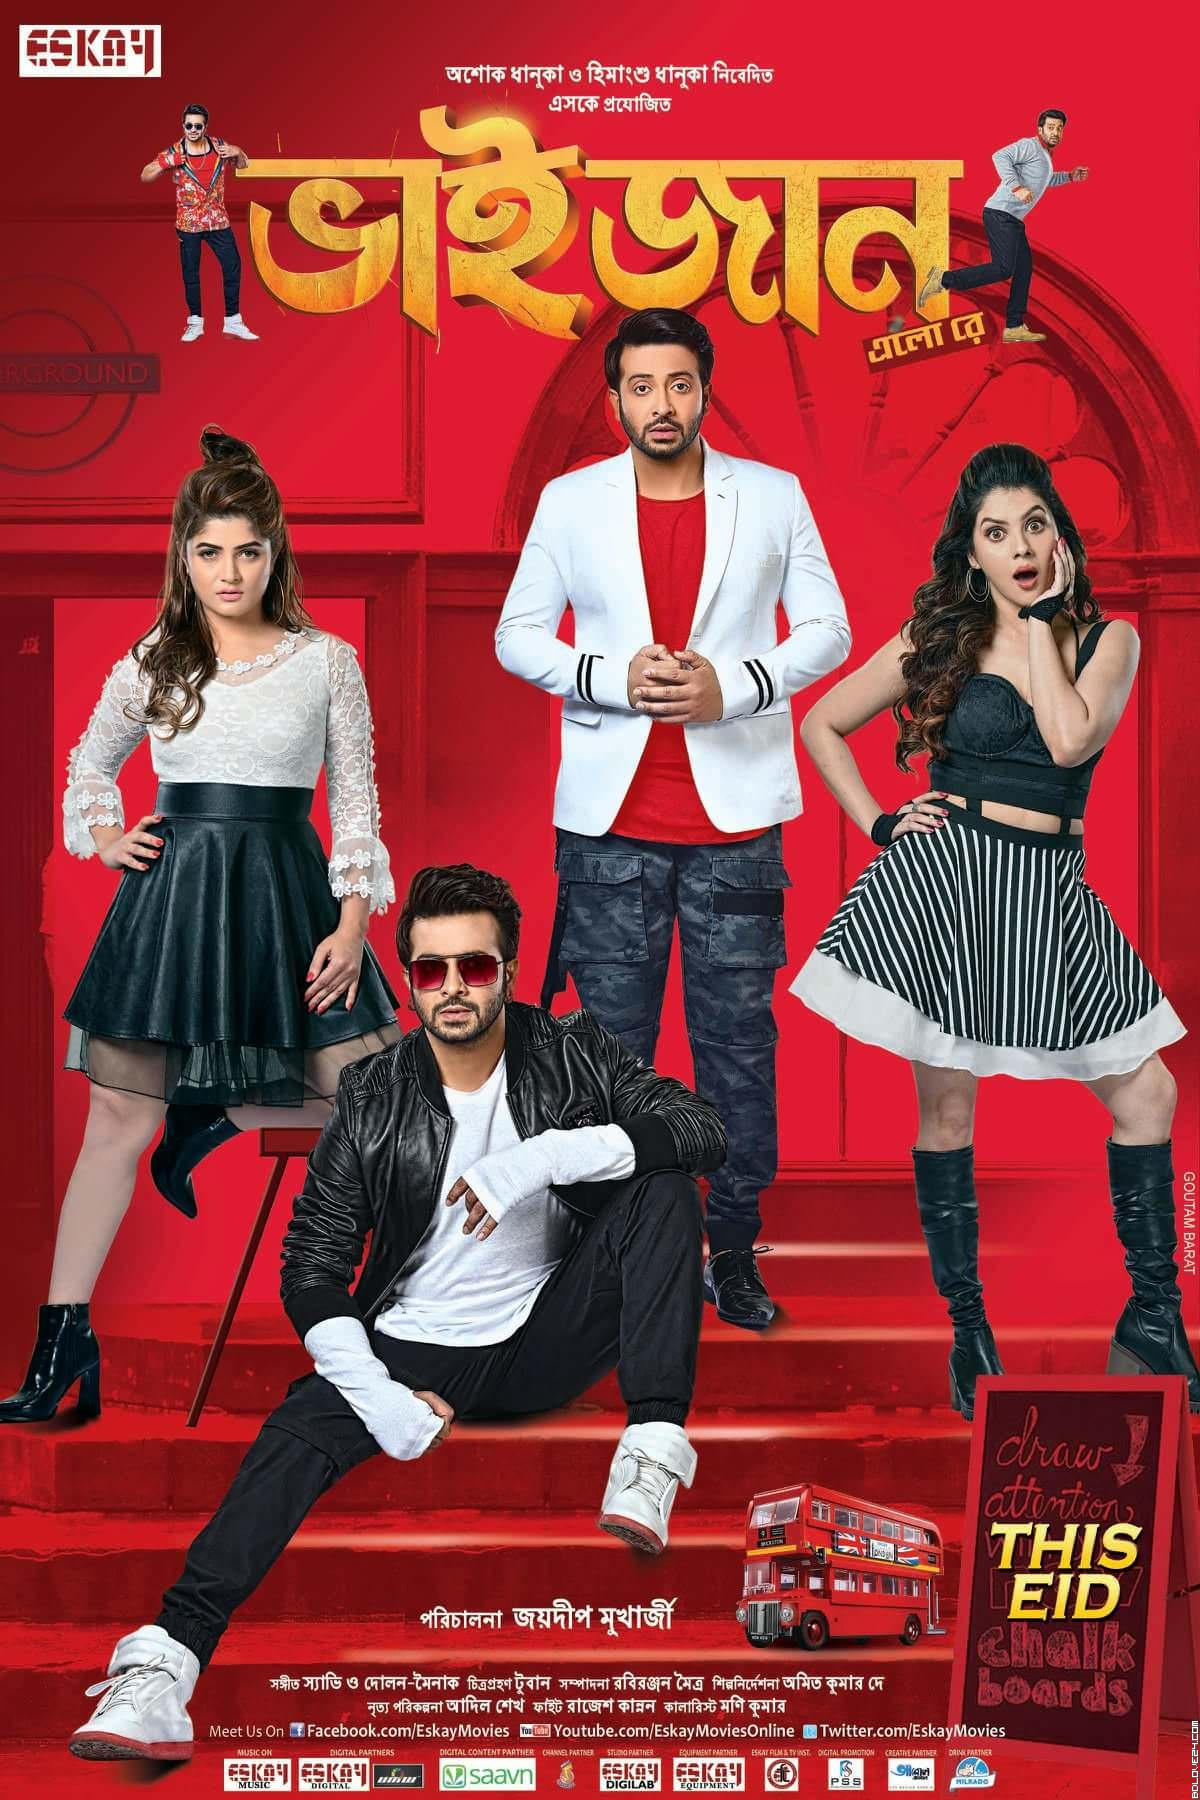 Likhechhi Tor Nam Full Video Song – Bhaijaan Elo Re (2018) Ft. Shakib Khan & Srabanti HD.mp4